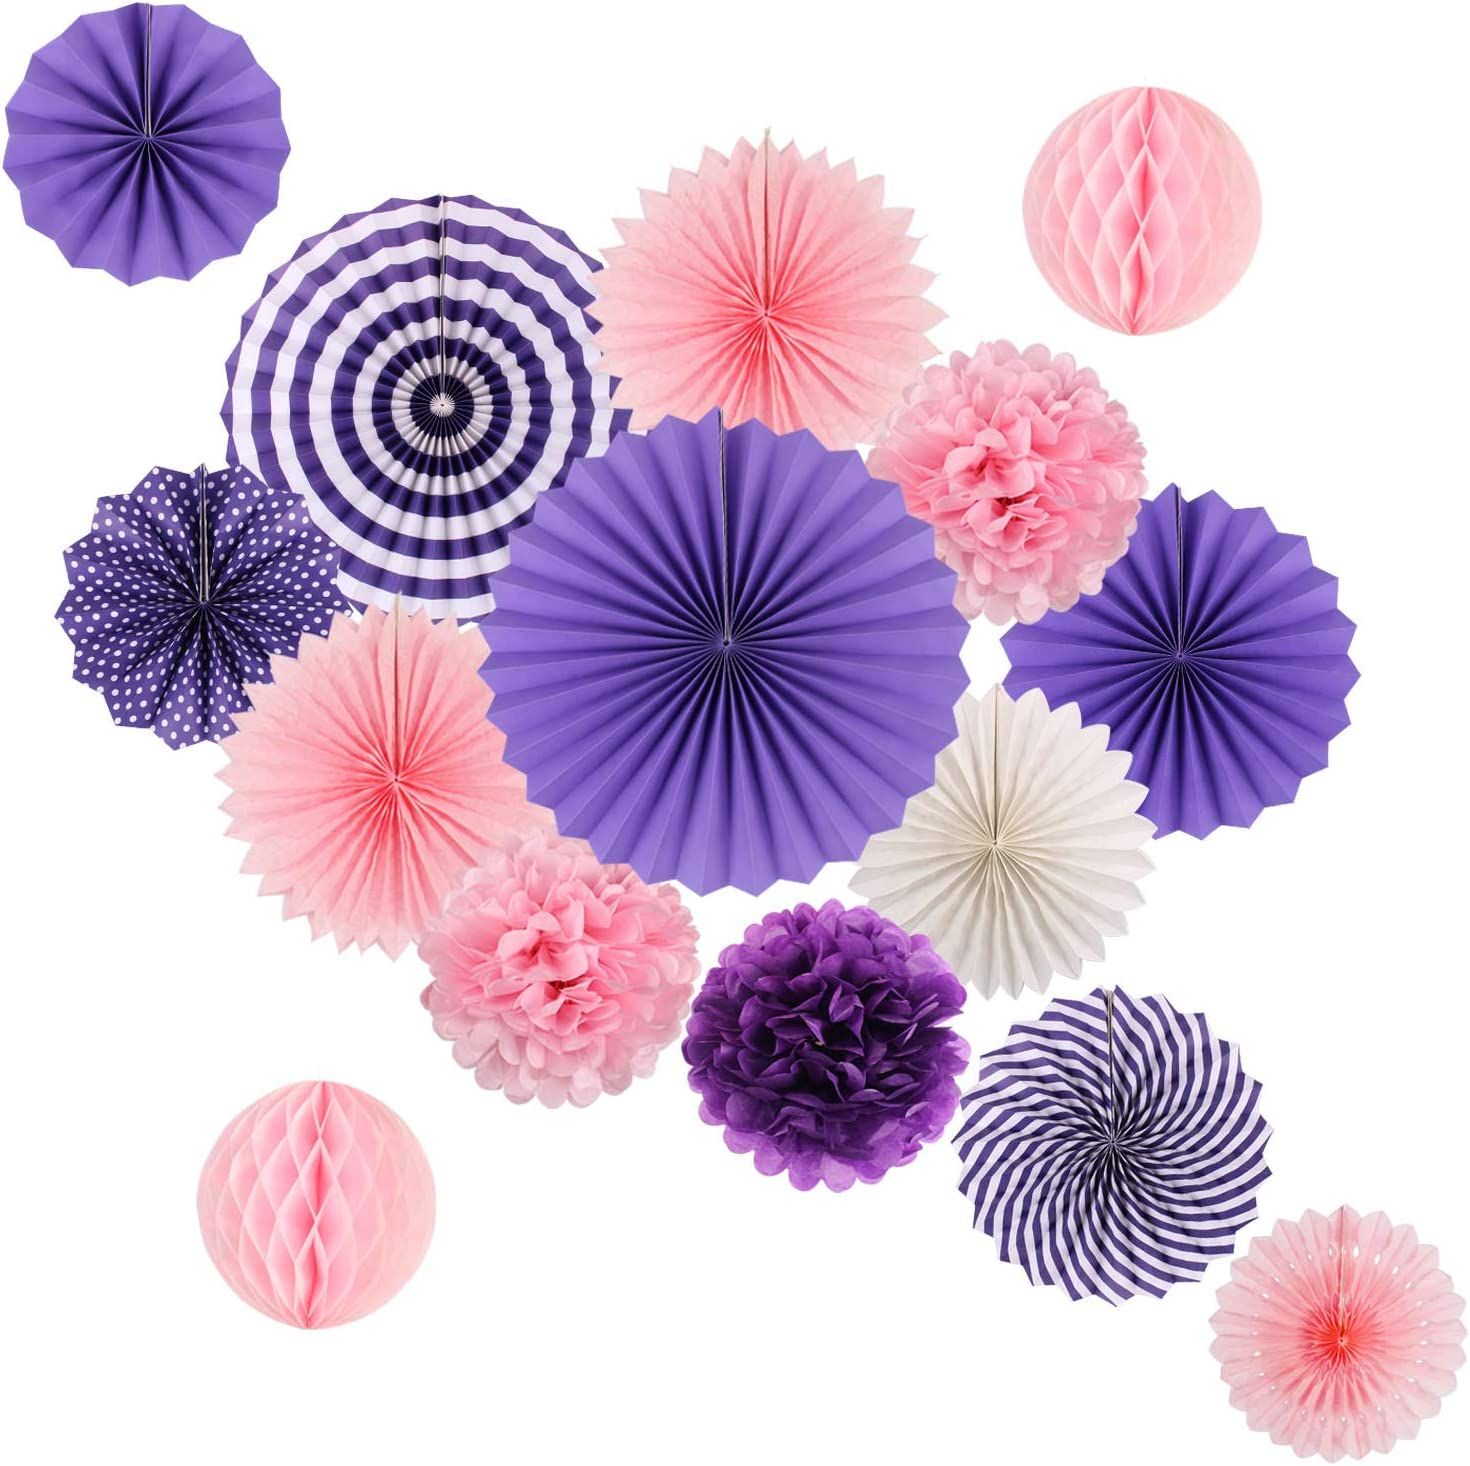 Hanging Party Decorations Set Tissue Paper Fan Paper Pom Poms Flowers and Honeycomb Ball for Wedding Birthday Bridal Showers Engagement Party Decor Pink Purple Kit